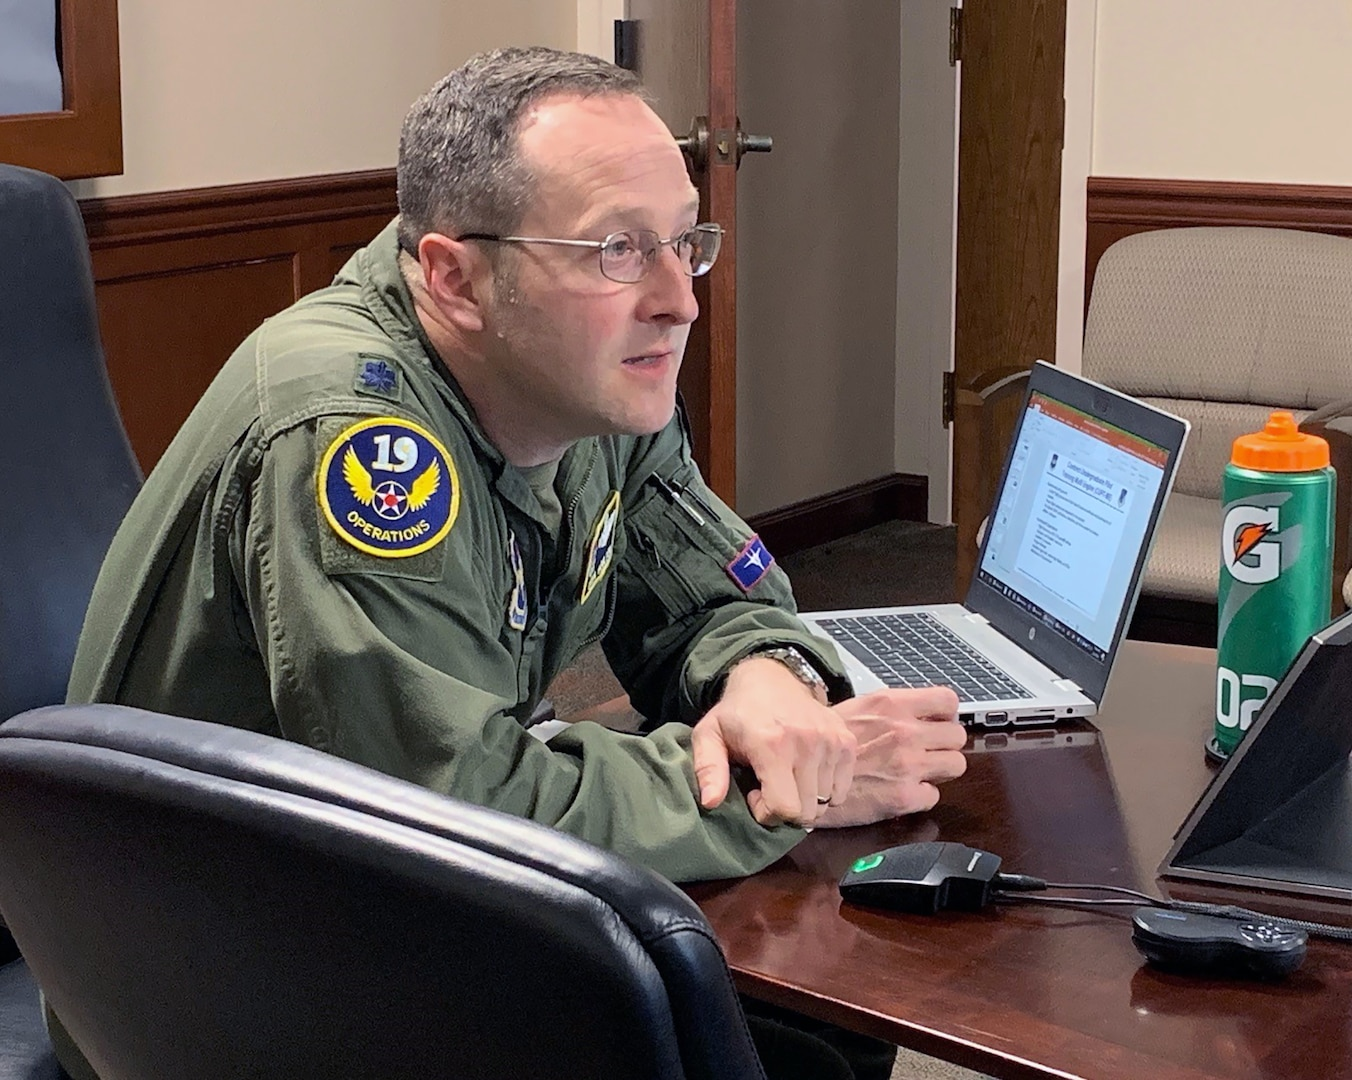 Lt. Col. Gregory Moulton, 19th Air Force deputy chief of Undergraduate Flying Training, facilitates questions from industry during the Flying Training Virtual Industry Day at Joint Base San Antonio-Randolph Feb. 24. This two-day event began with a program overview and described specific requests to address the pilot shortage.